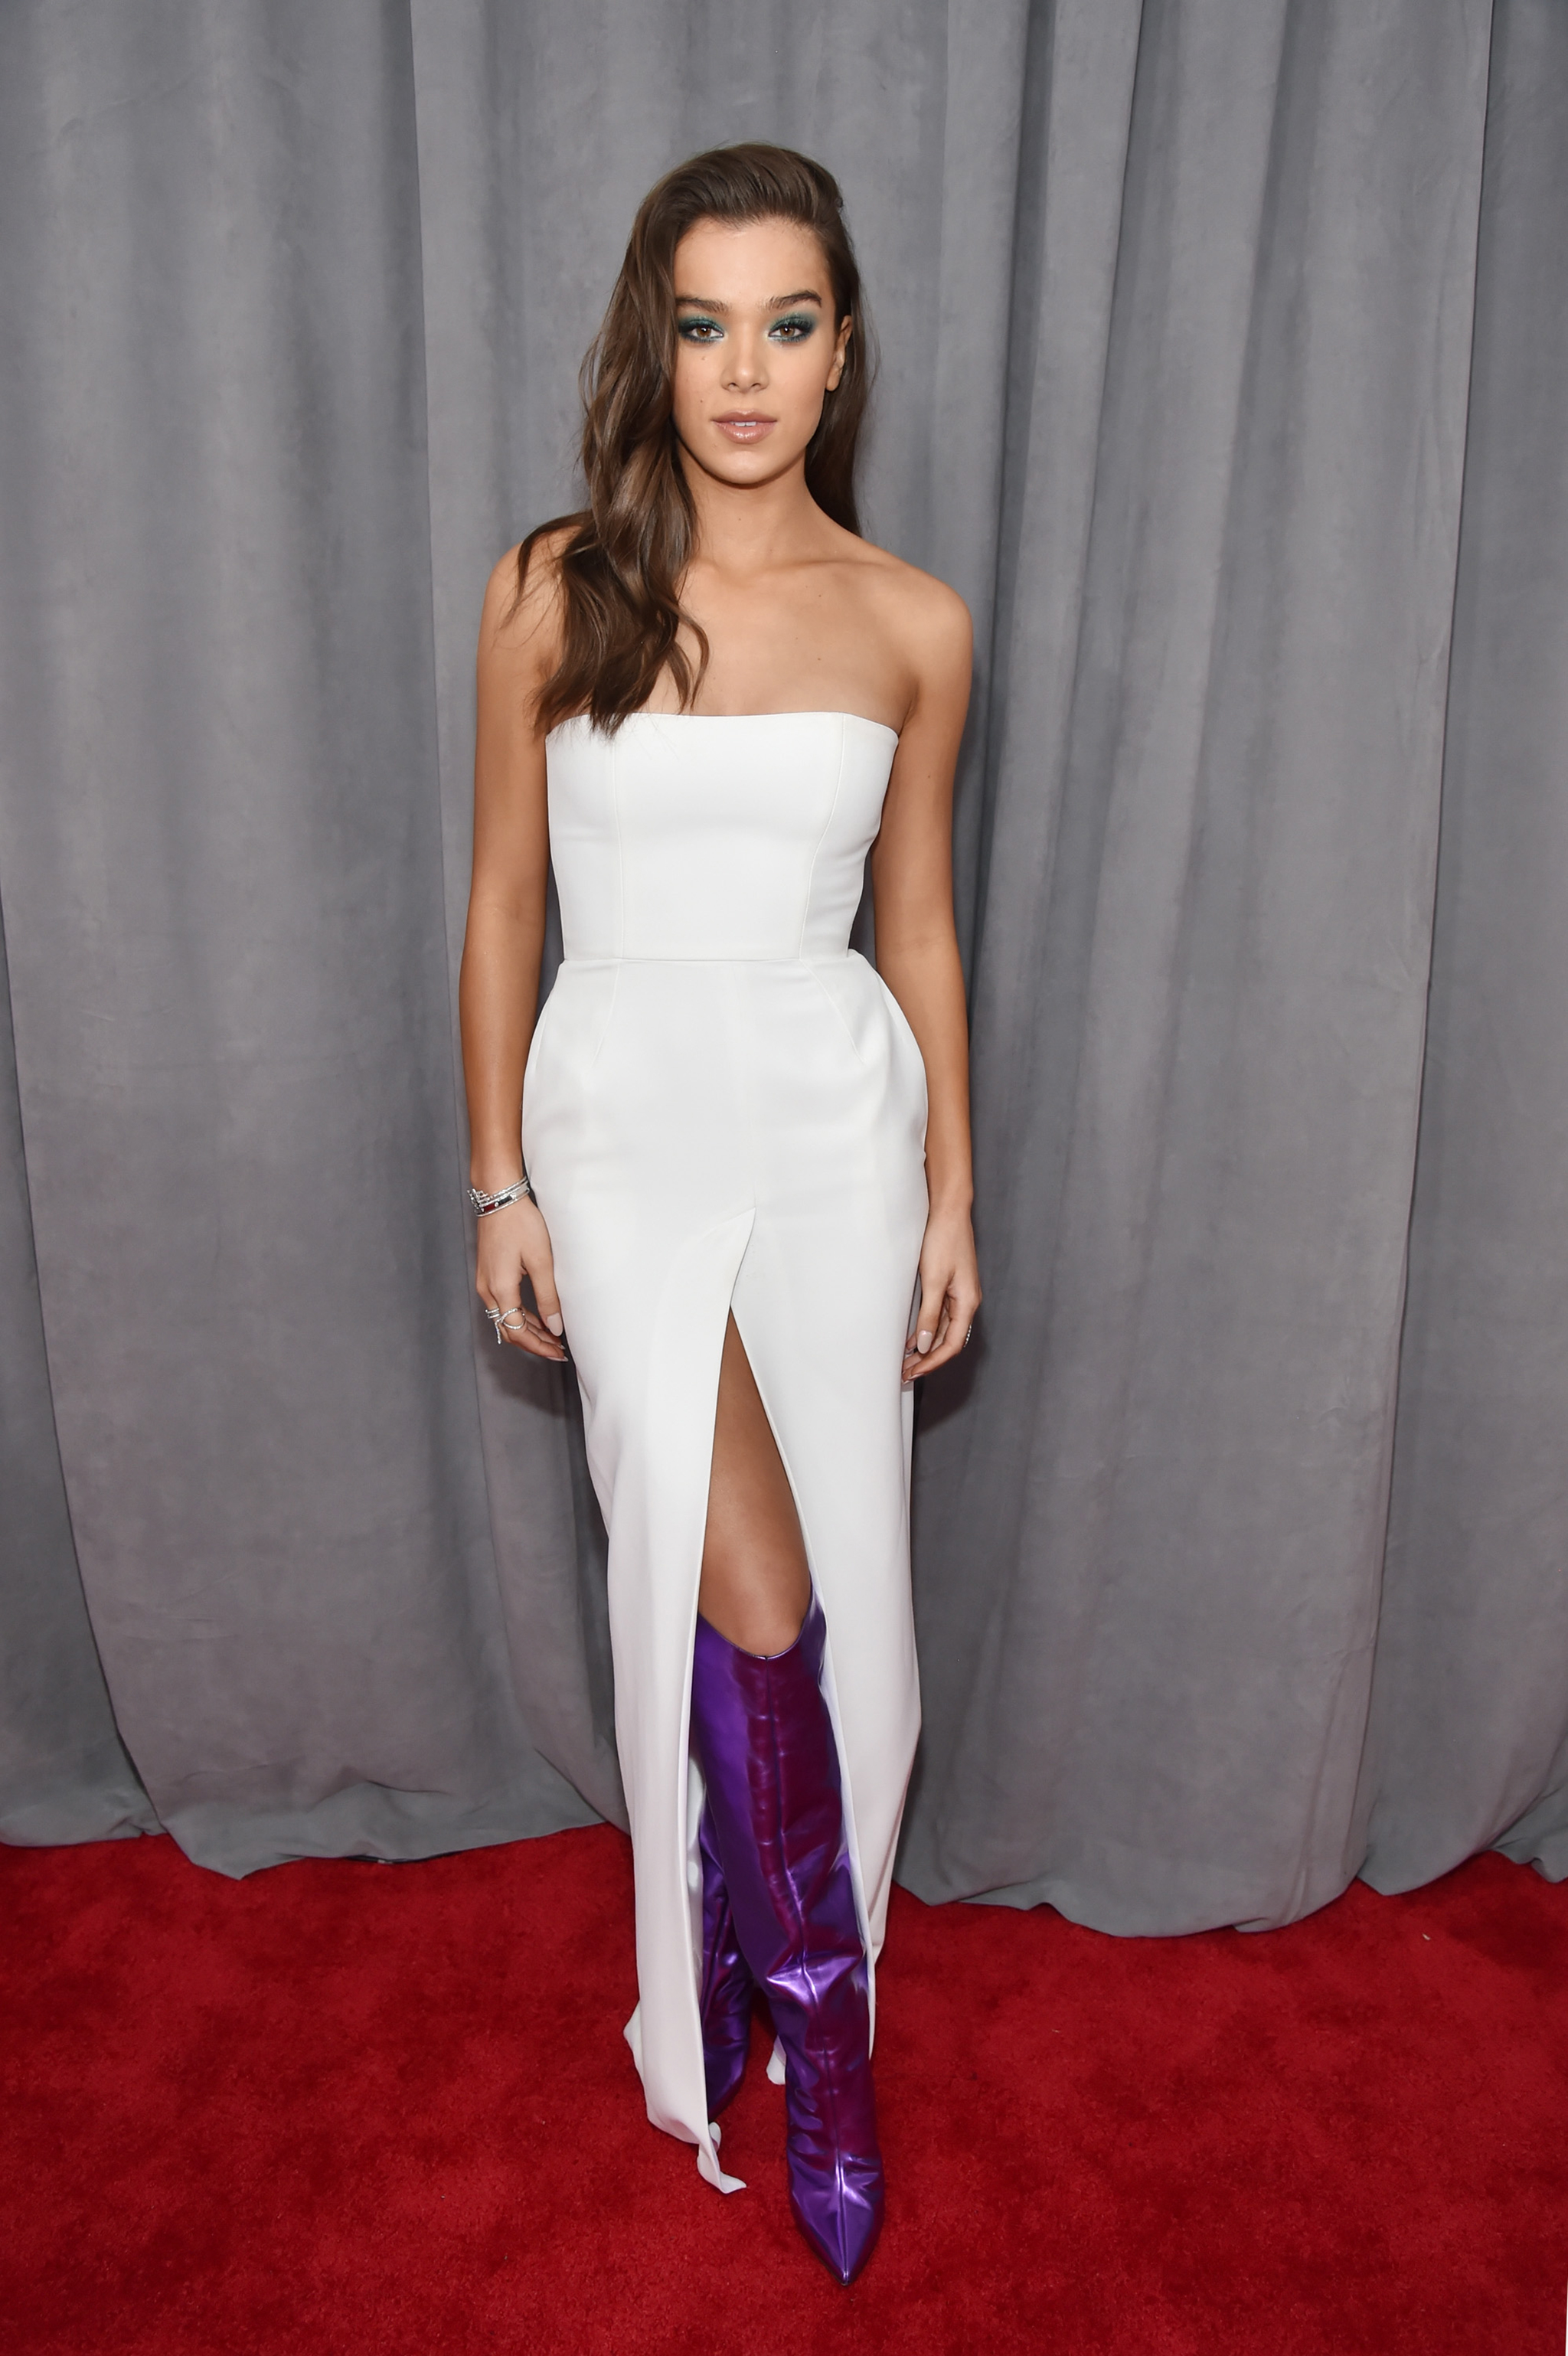 Recording artist and actor Hailee Steinfeld attends the 60th Annual GRAMMY Awards at Madison Square Garden on January 28, 2018 in New York City.